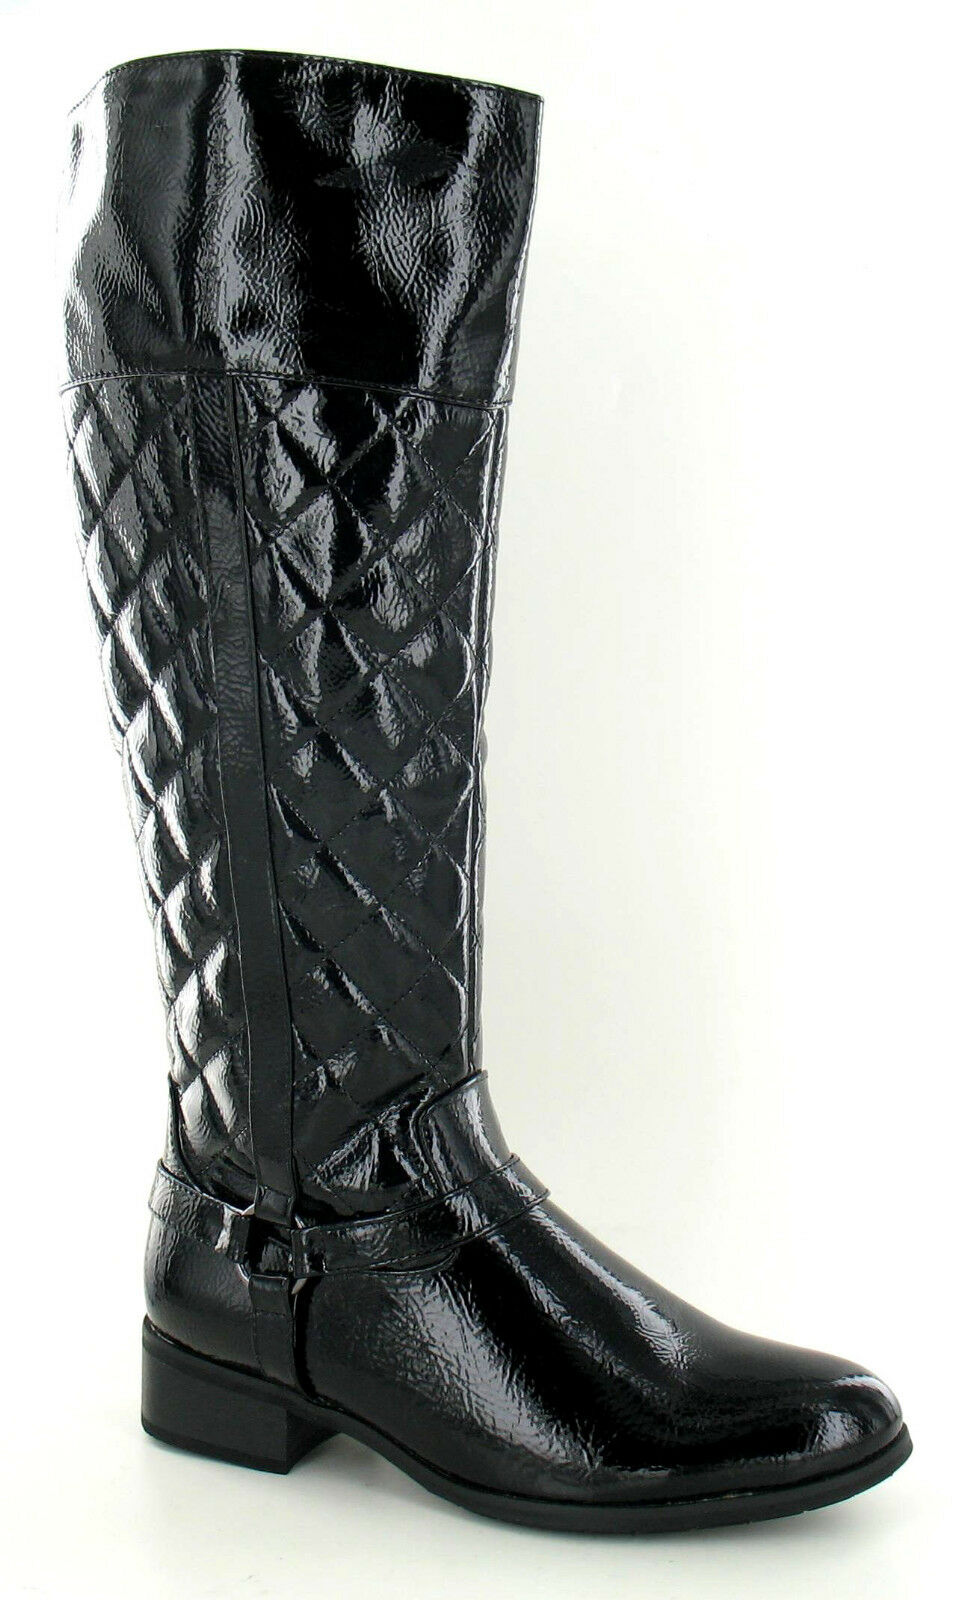 Spot On F50192 Ladies Black Patent High Zip Up Quilted Riding Boot (R36A)(Kett)